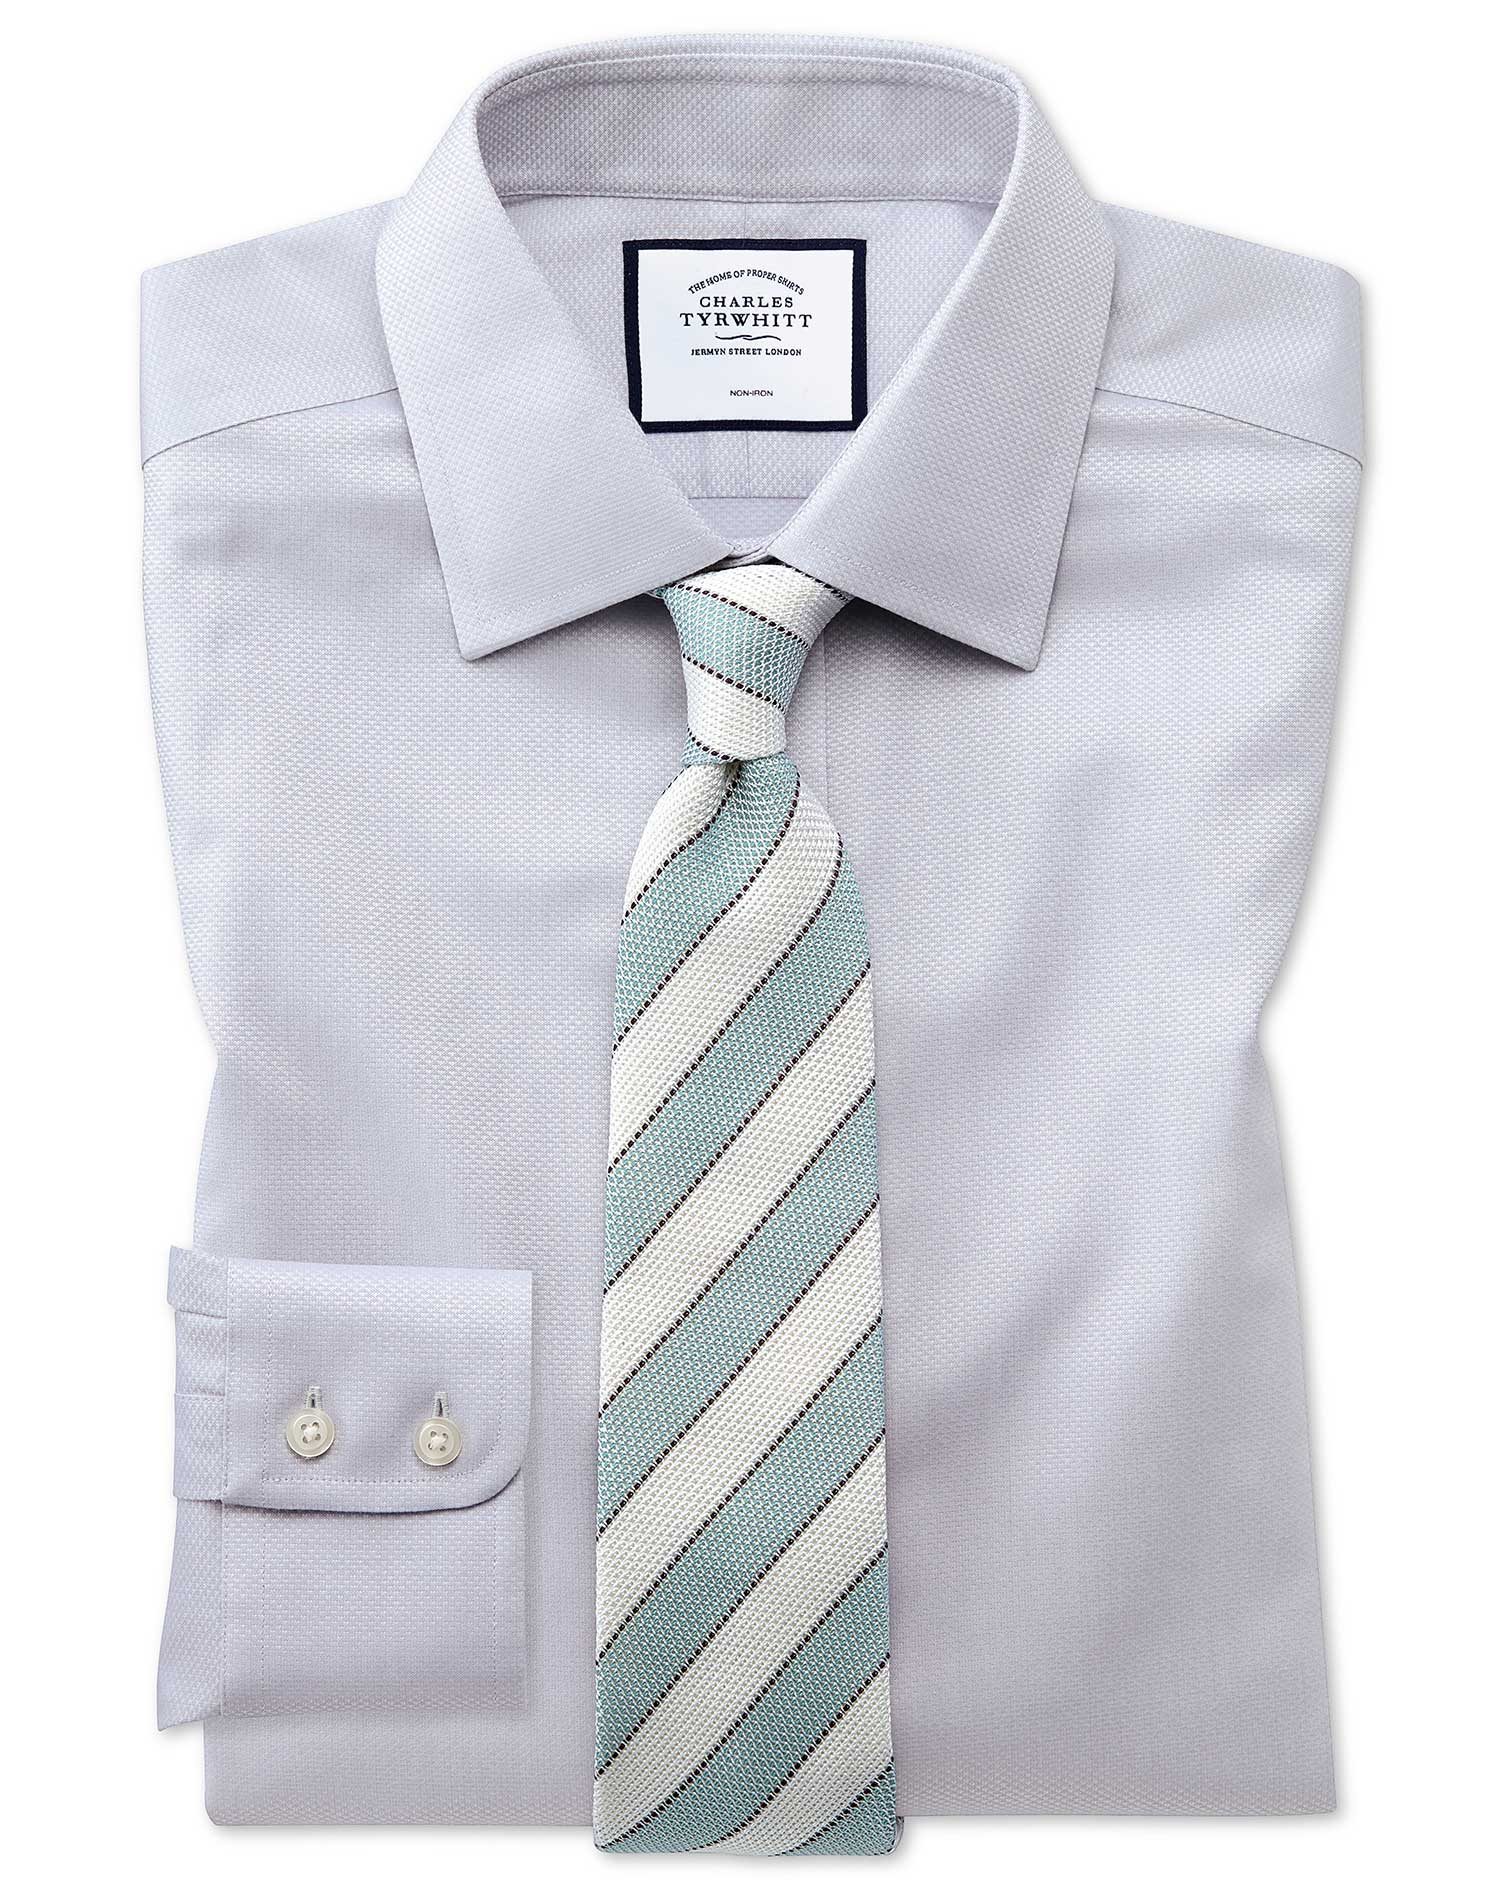 Classic Fit Non-Iron Grey Triangle Weave Cotton Formal Shirt Double Cuff Size 17/36 by Charles Tyrwh